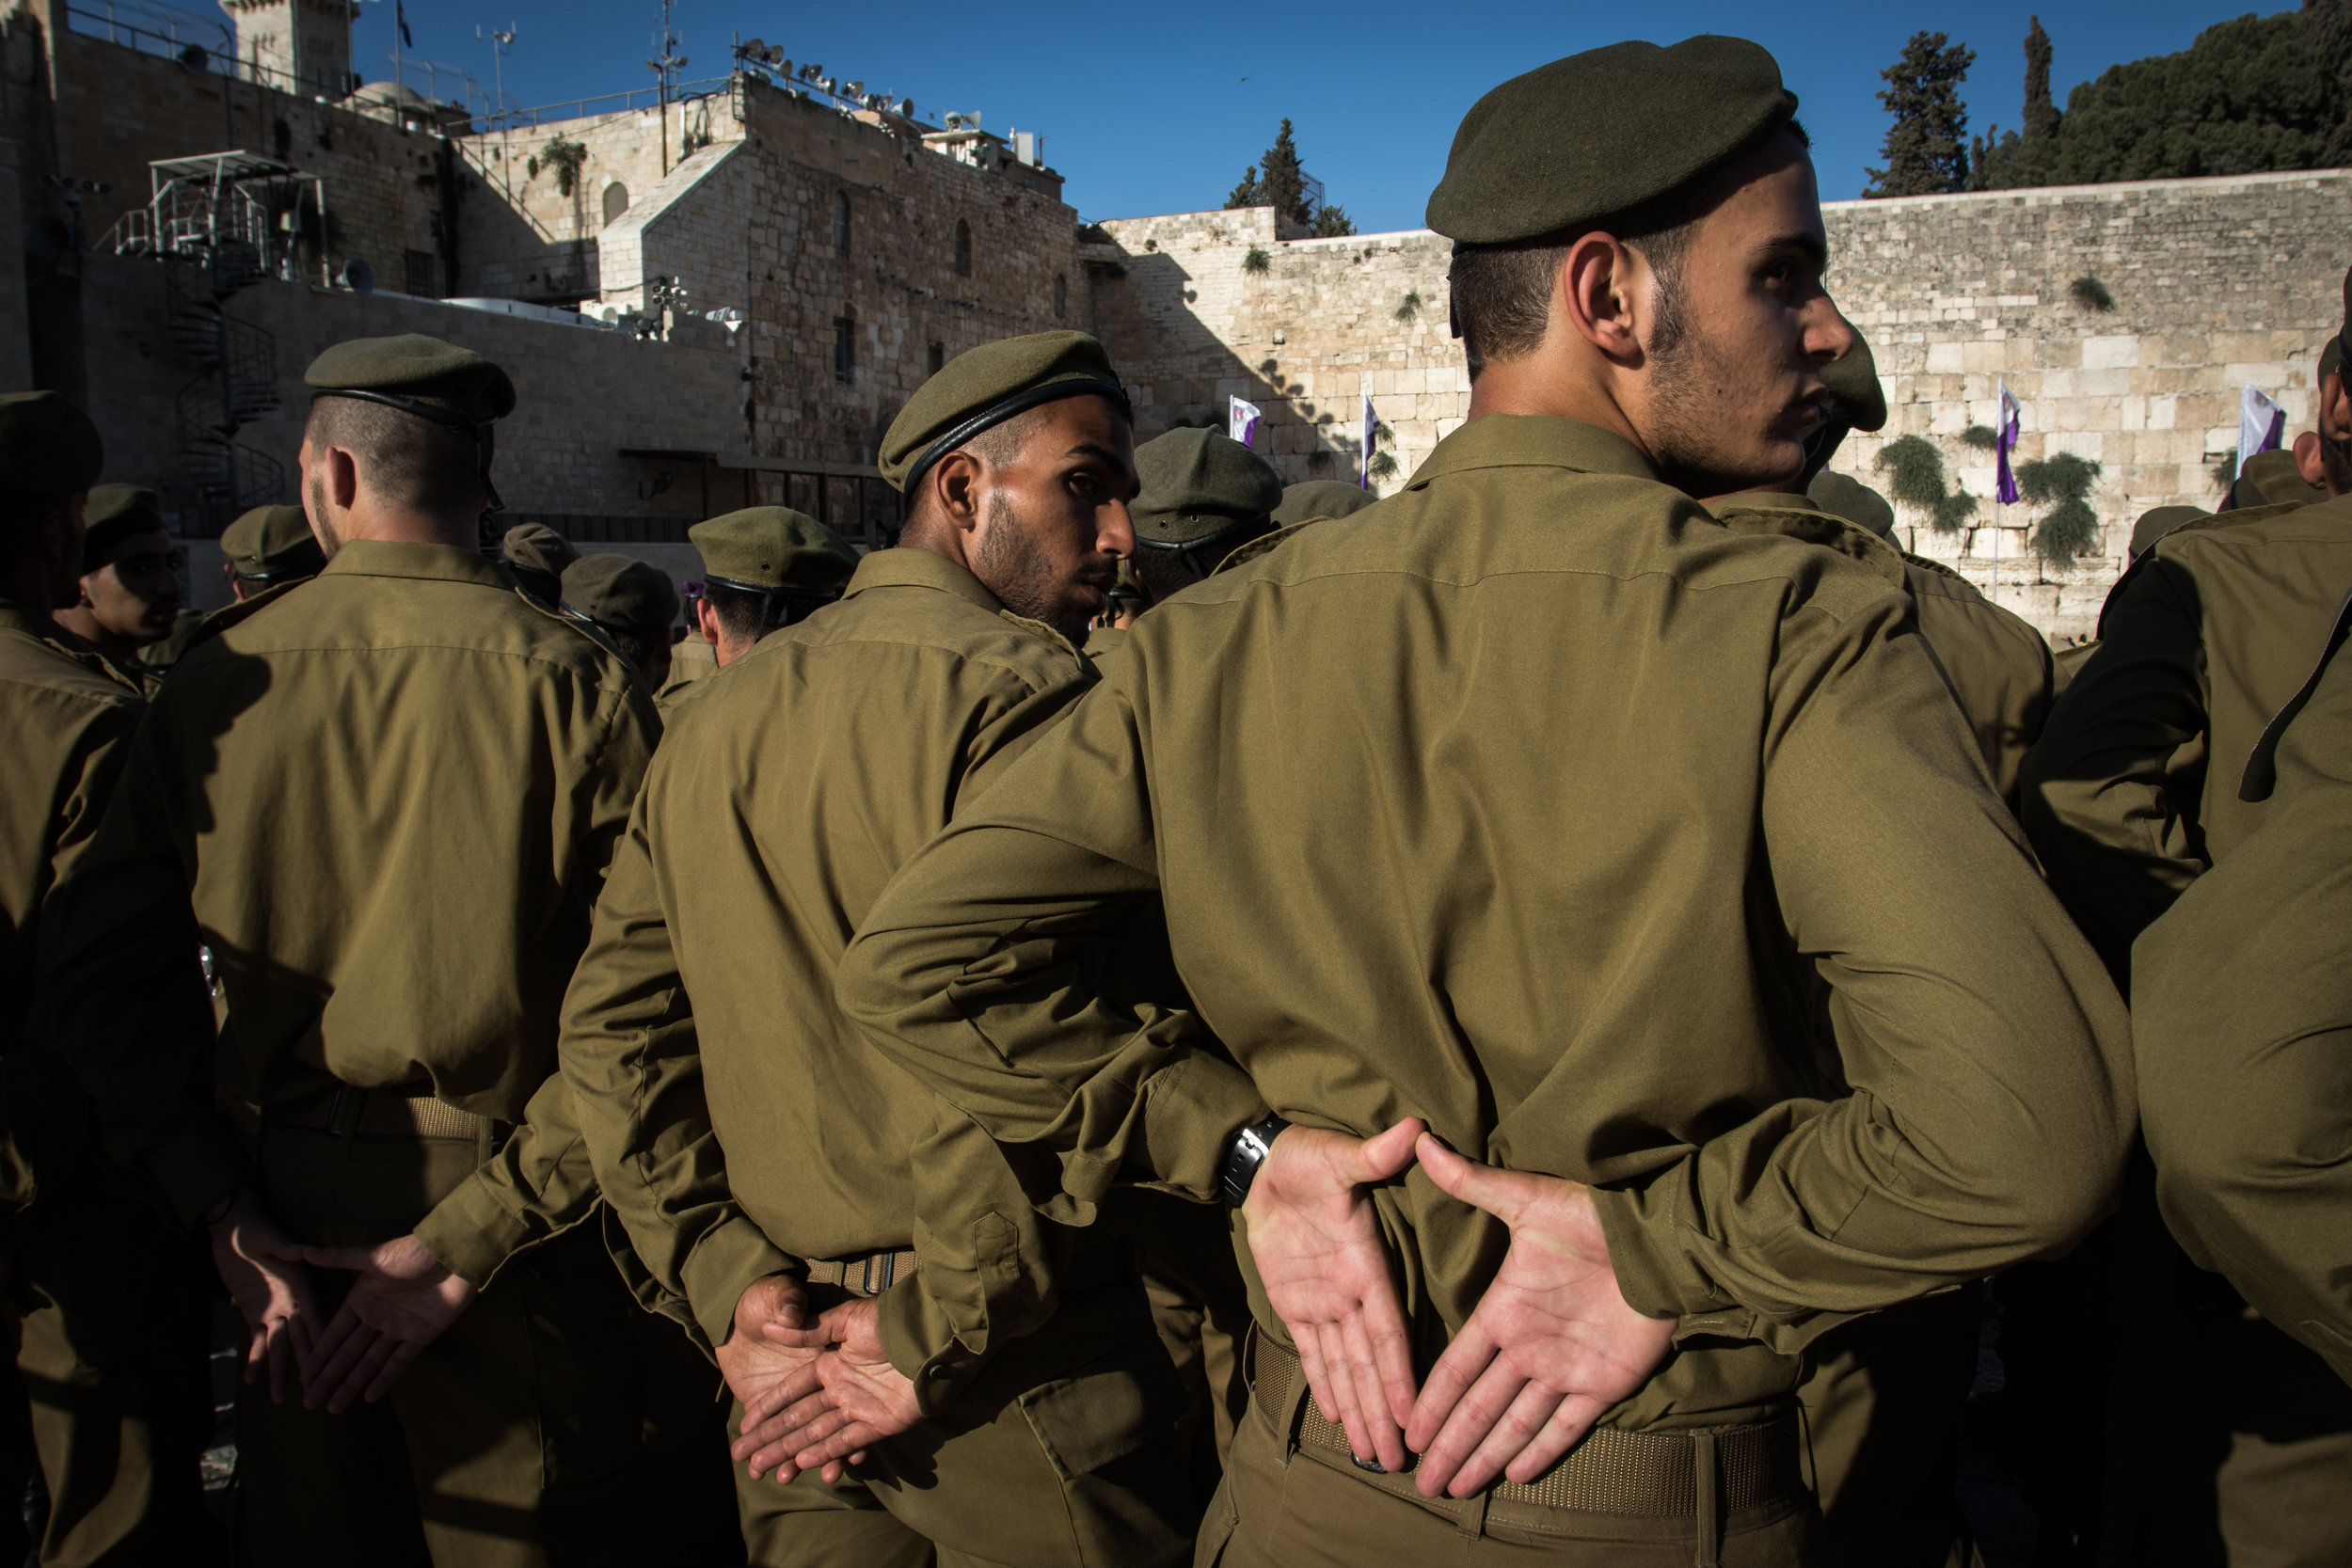 New soldiers of the Giv'ati combat brigade stand at attention for their Tekkes Hashba'a, or swearing in ceremony, in front of the Kotel, June 23, 2016. The ceremony marks the end of the three months of basic training that all soldiers in the Israeli Defense Force, or IDF, must pass. After the ceremony, the new soldiers are allowed to take home their weapons for the first time since joining the military. For this unit, the next stage of training that lies ahead is combat training where the soldiers will learn skills specific to their unit's responsibilities.